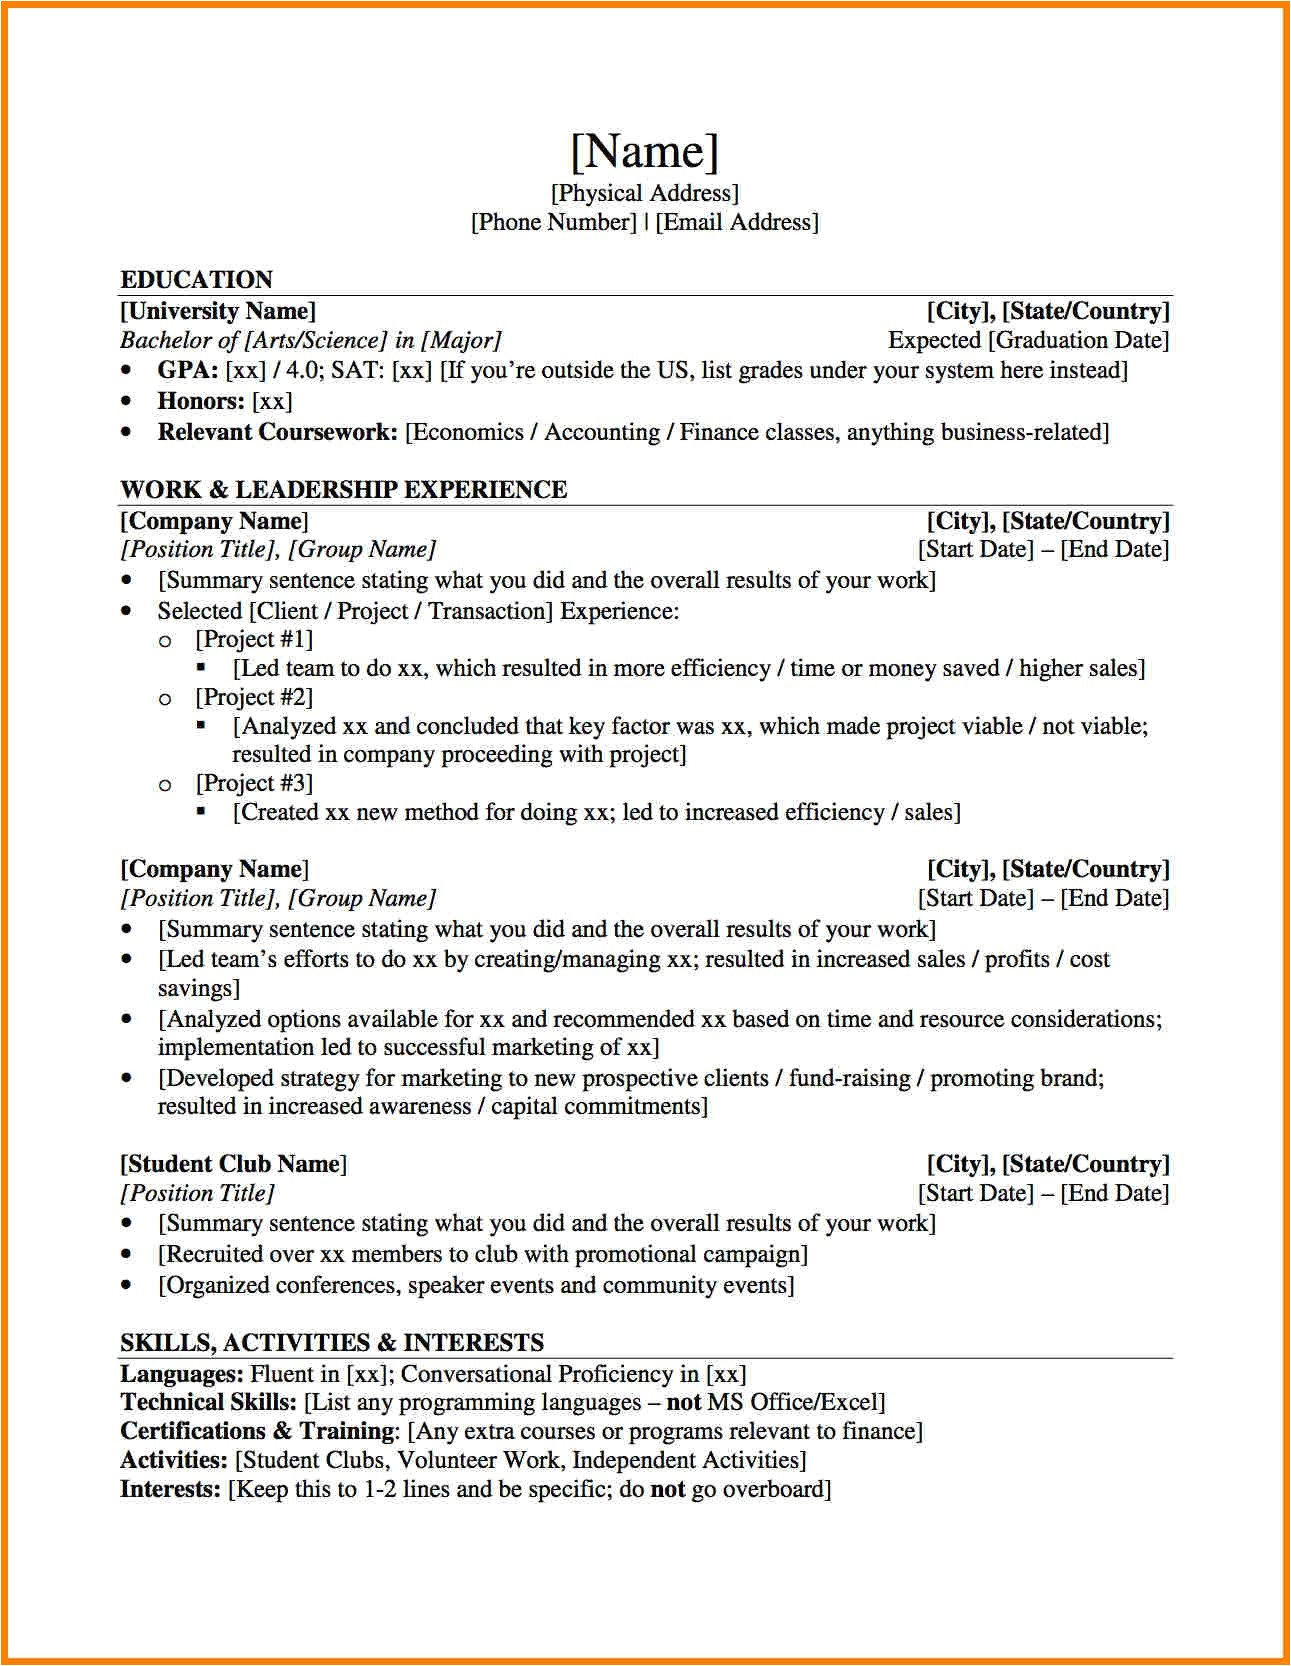 Resume Templates for Banking Jobs Investment Banking Resume Template Health Symptoms and